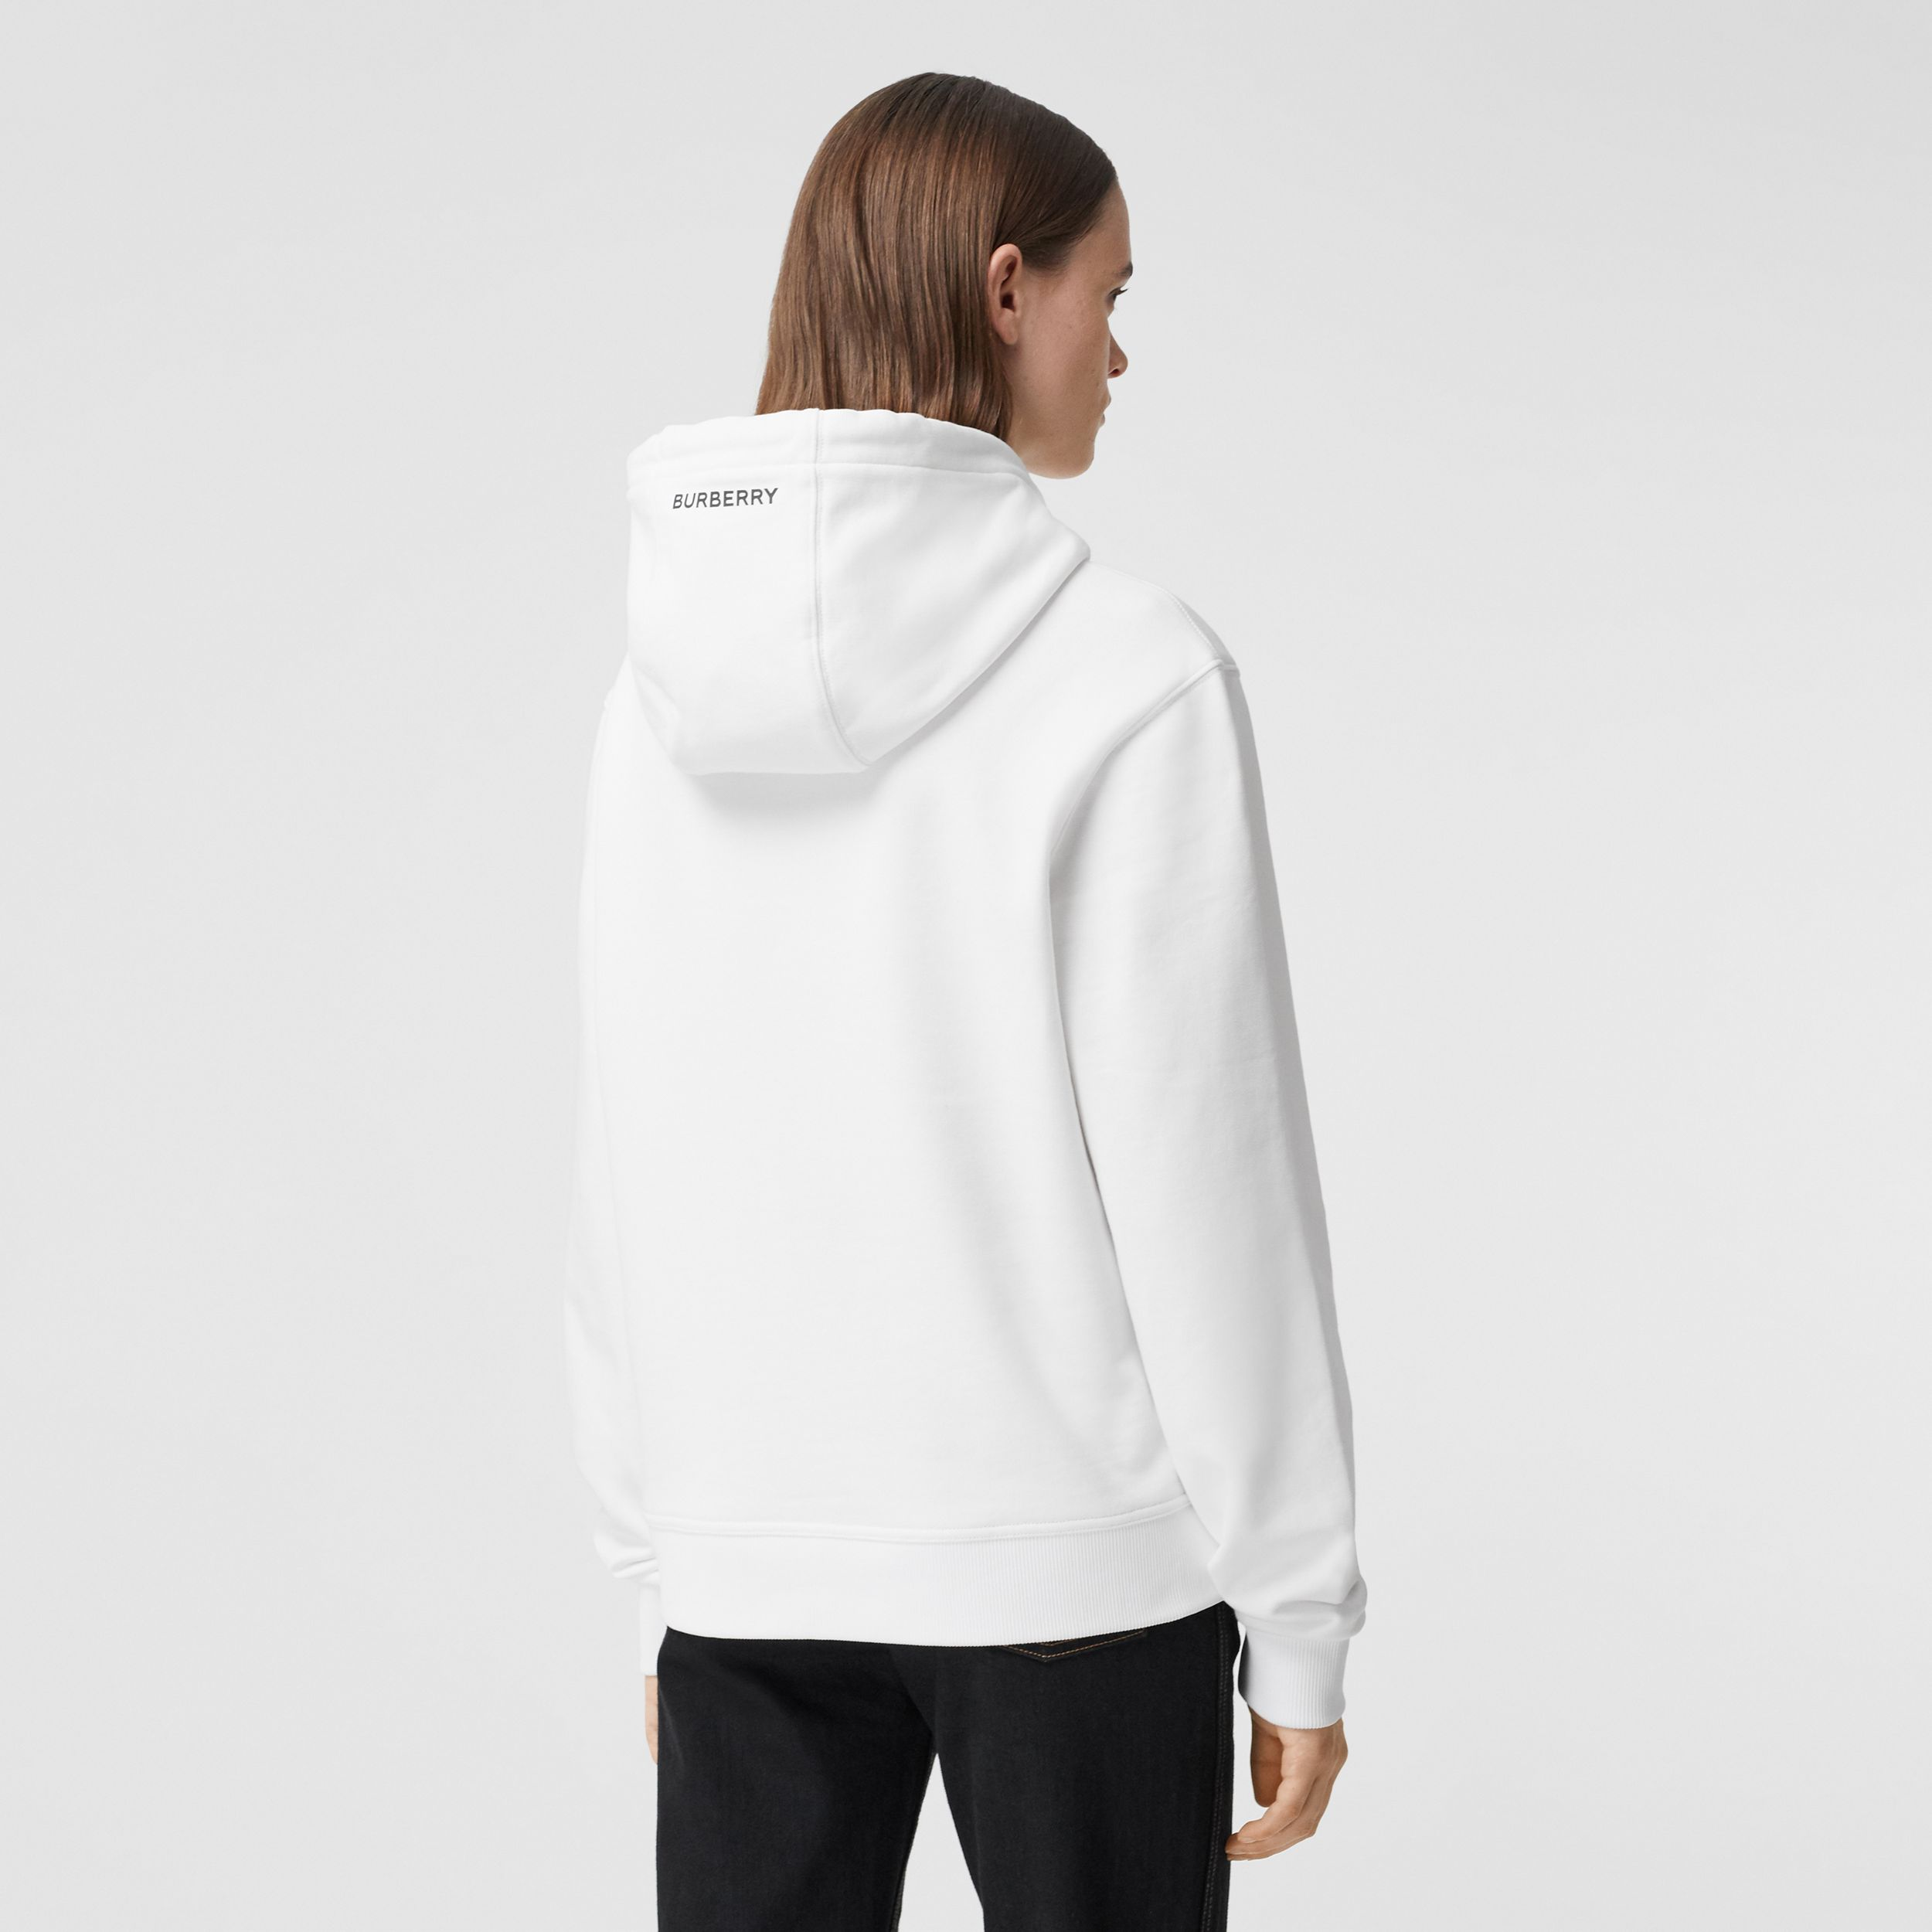 Slogan Print Cotton Oversized Hoodie in White - Women | Burberry Canada - 3